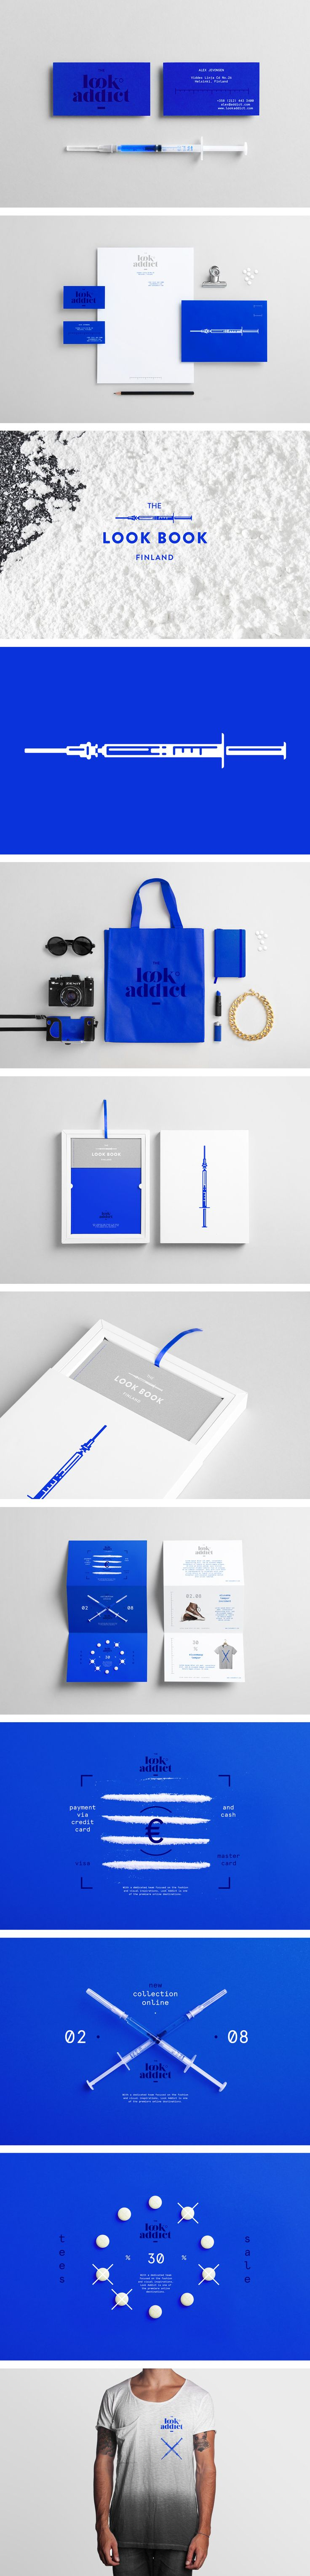 Look Addict Identity by NOEEKO — Design Studio | #stationary #corporate #design #corporatedesign #identity #branding #marketing < repinned by www.BlickeDeeler.de | Take a look at www.LogoGestaltung-Hamburg.de